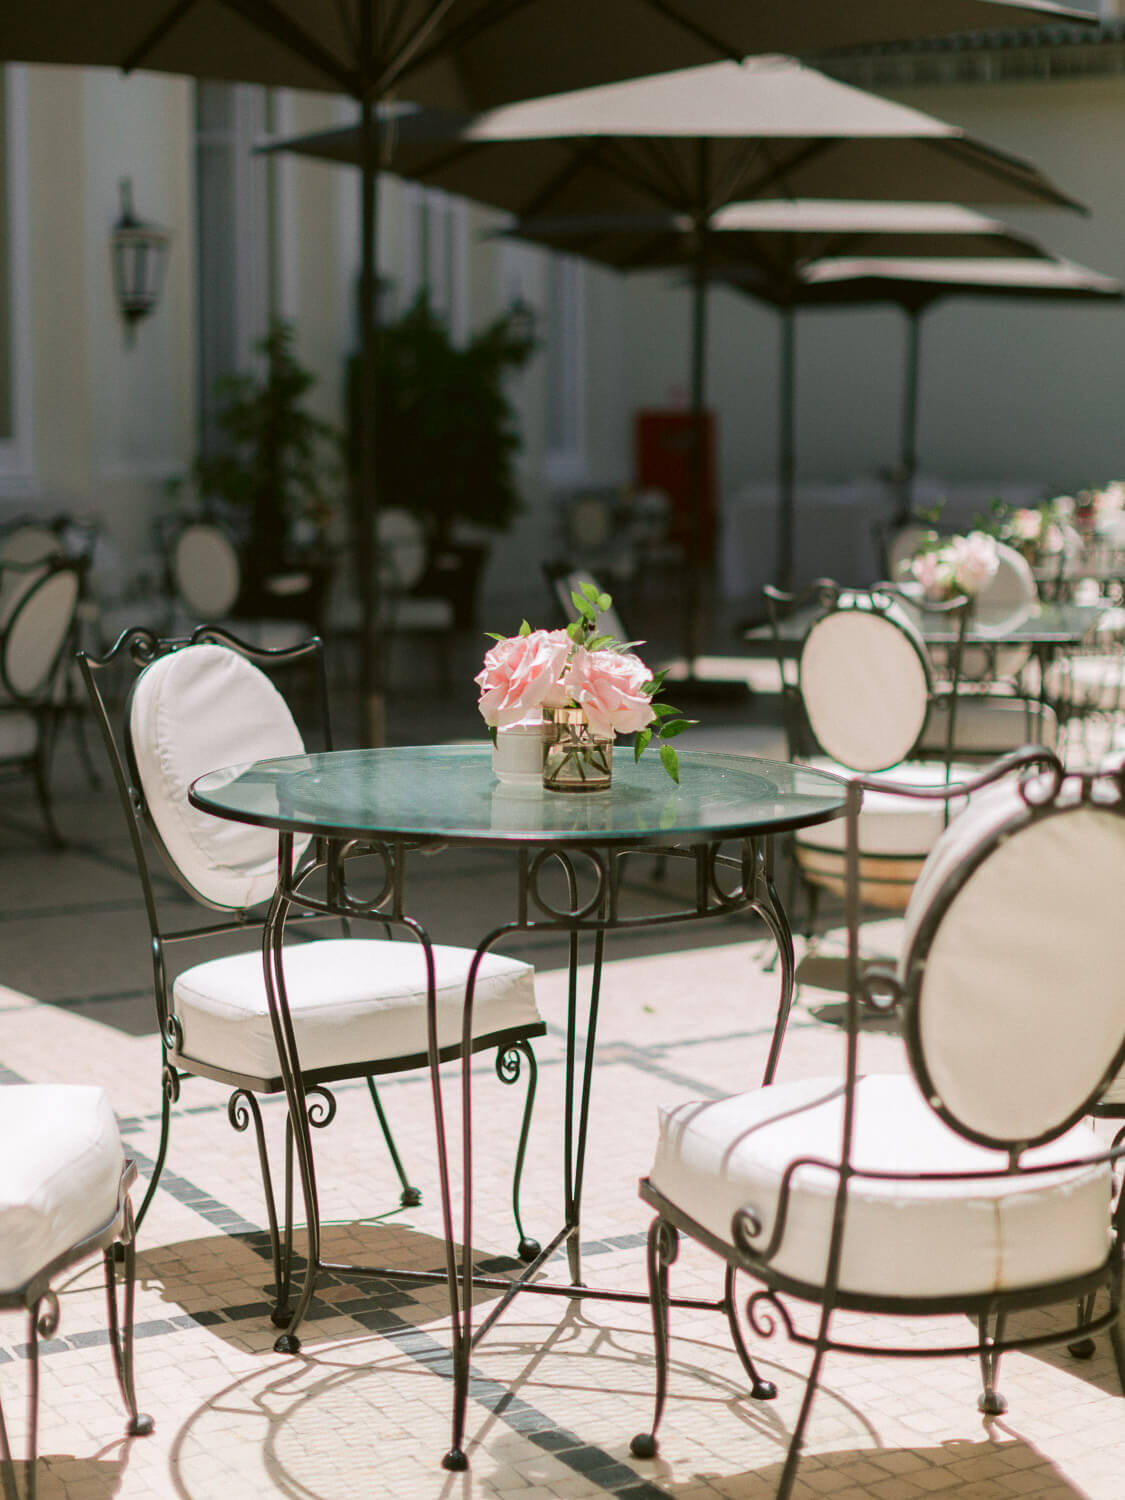 chic garden tables with roses centrepieces for wedding cocktail in Hotel Palacio Estoril by Portugal Wedding Photographer